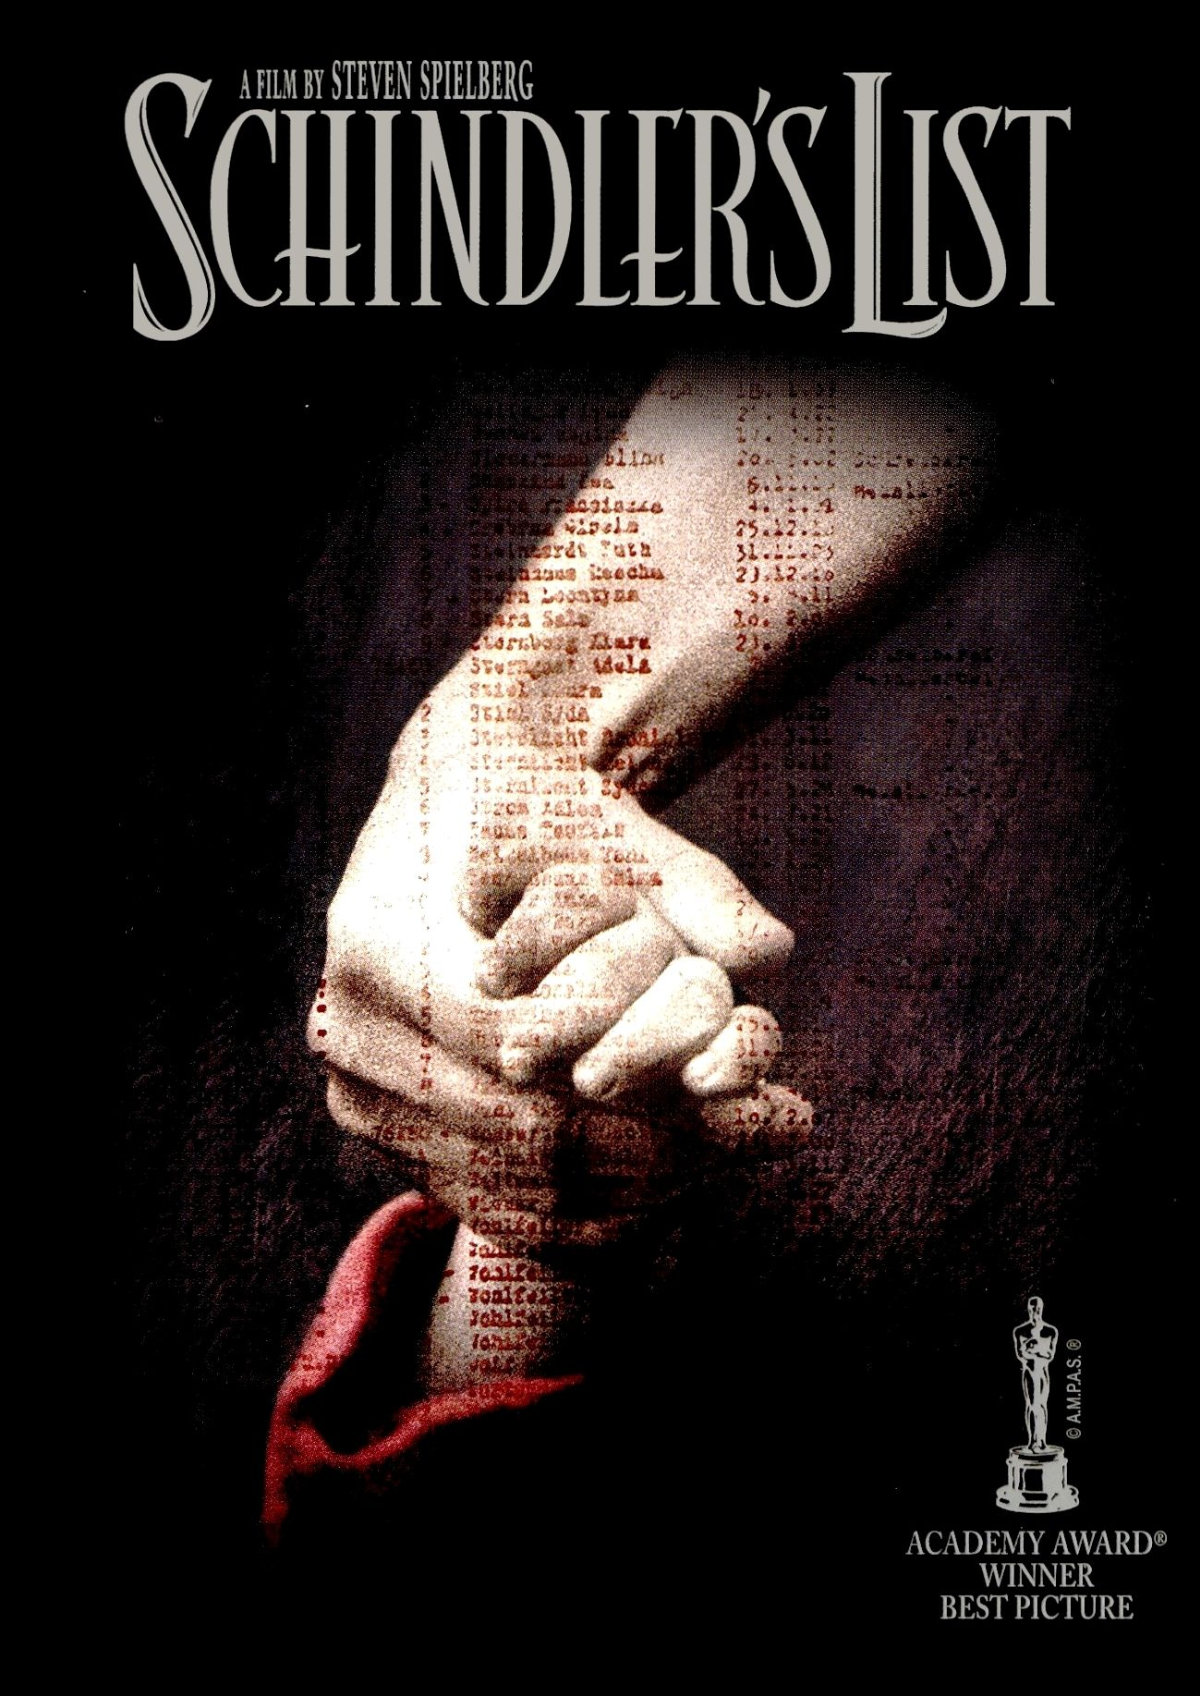 'Schindler's List' movie poster